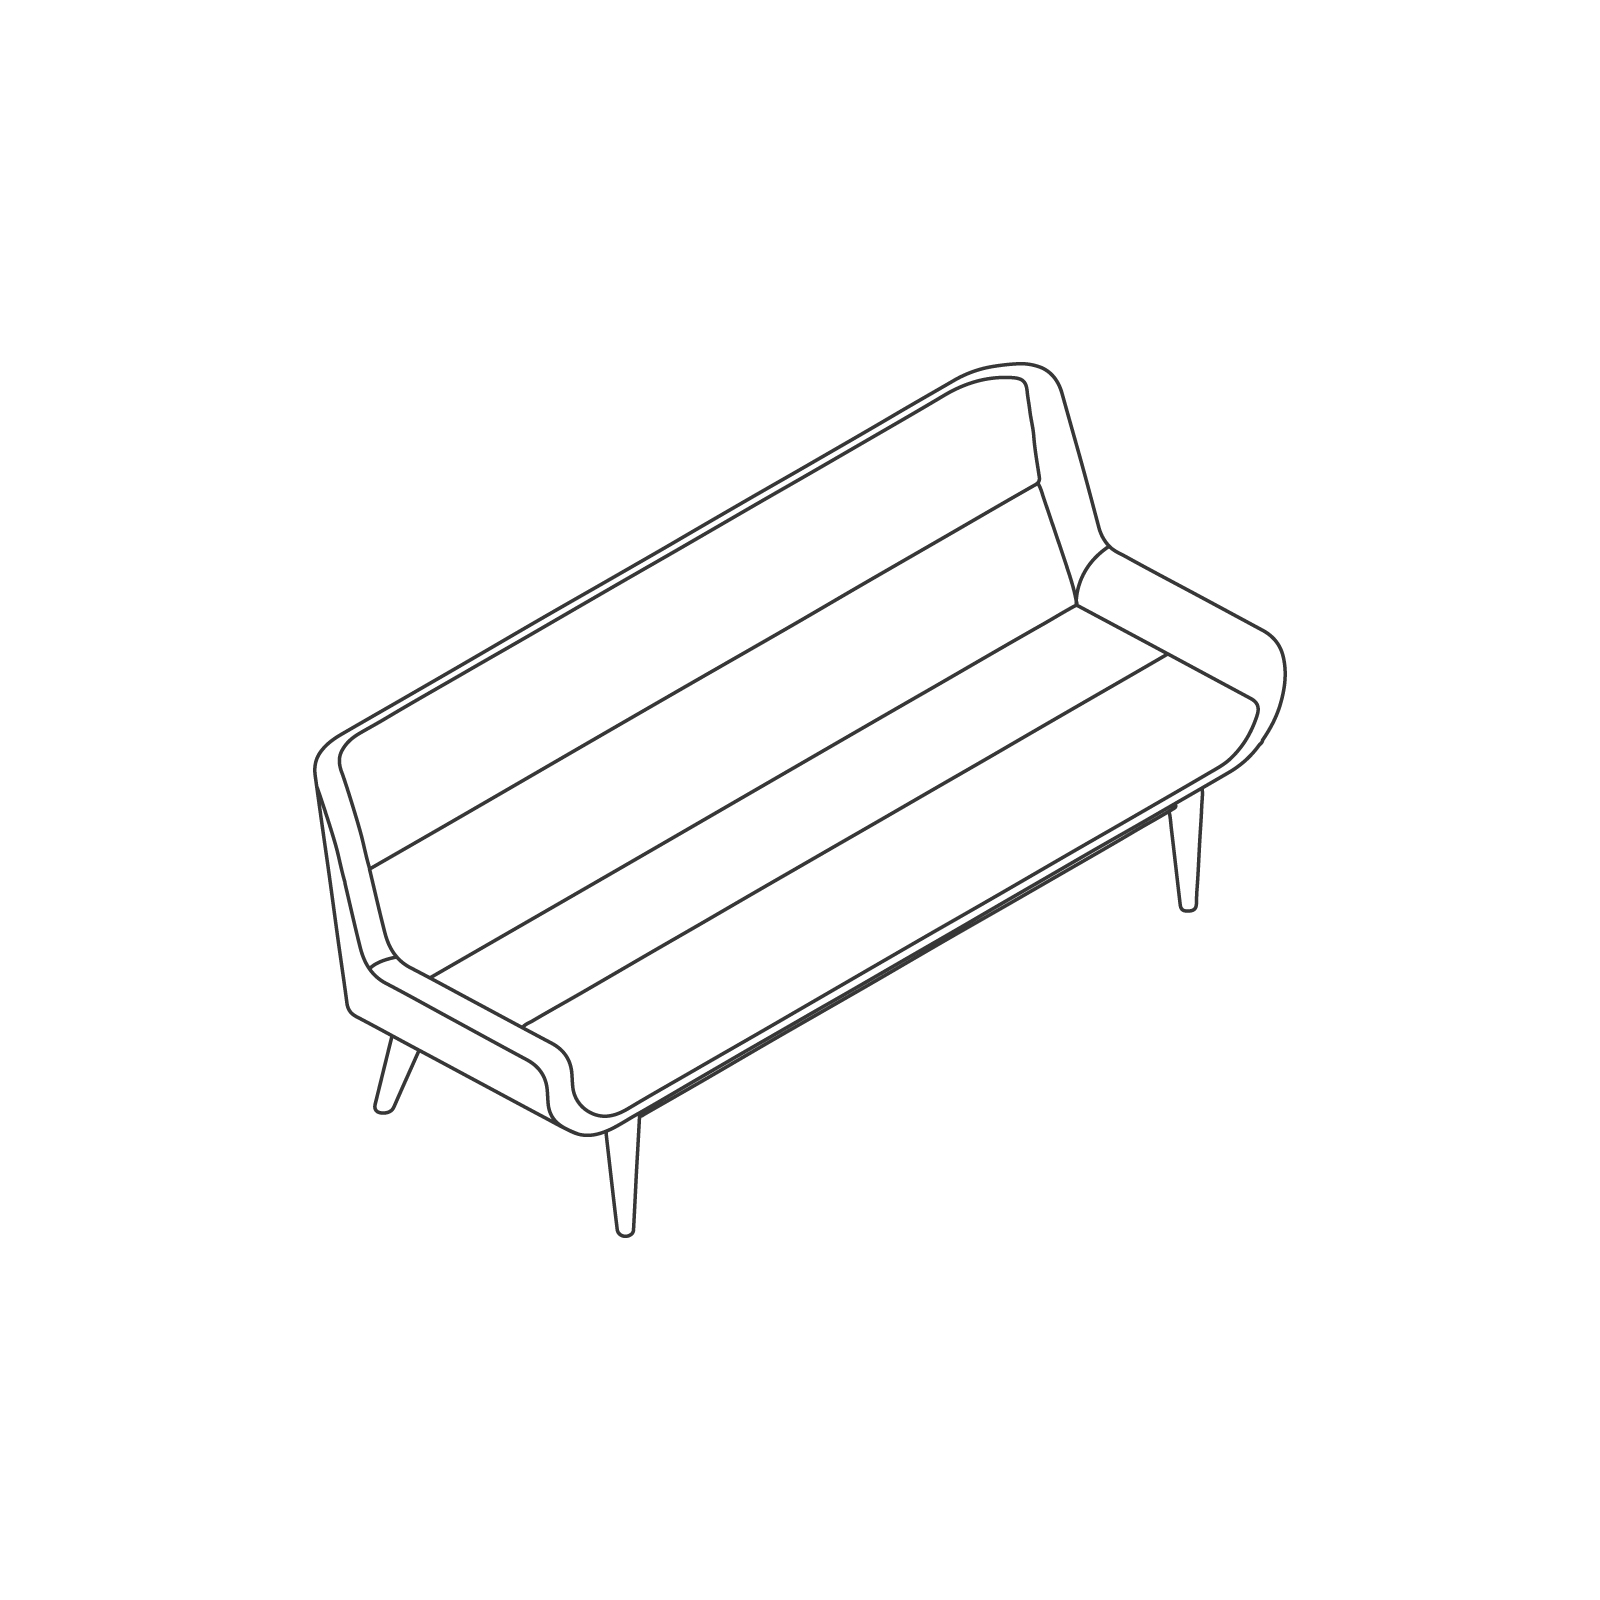 A line drawing of Hush Sofa–Low Back–3 Seat–Wood Base.